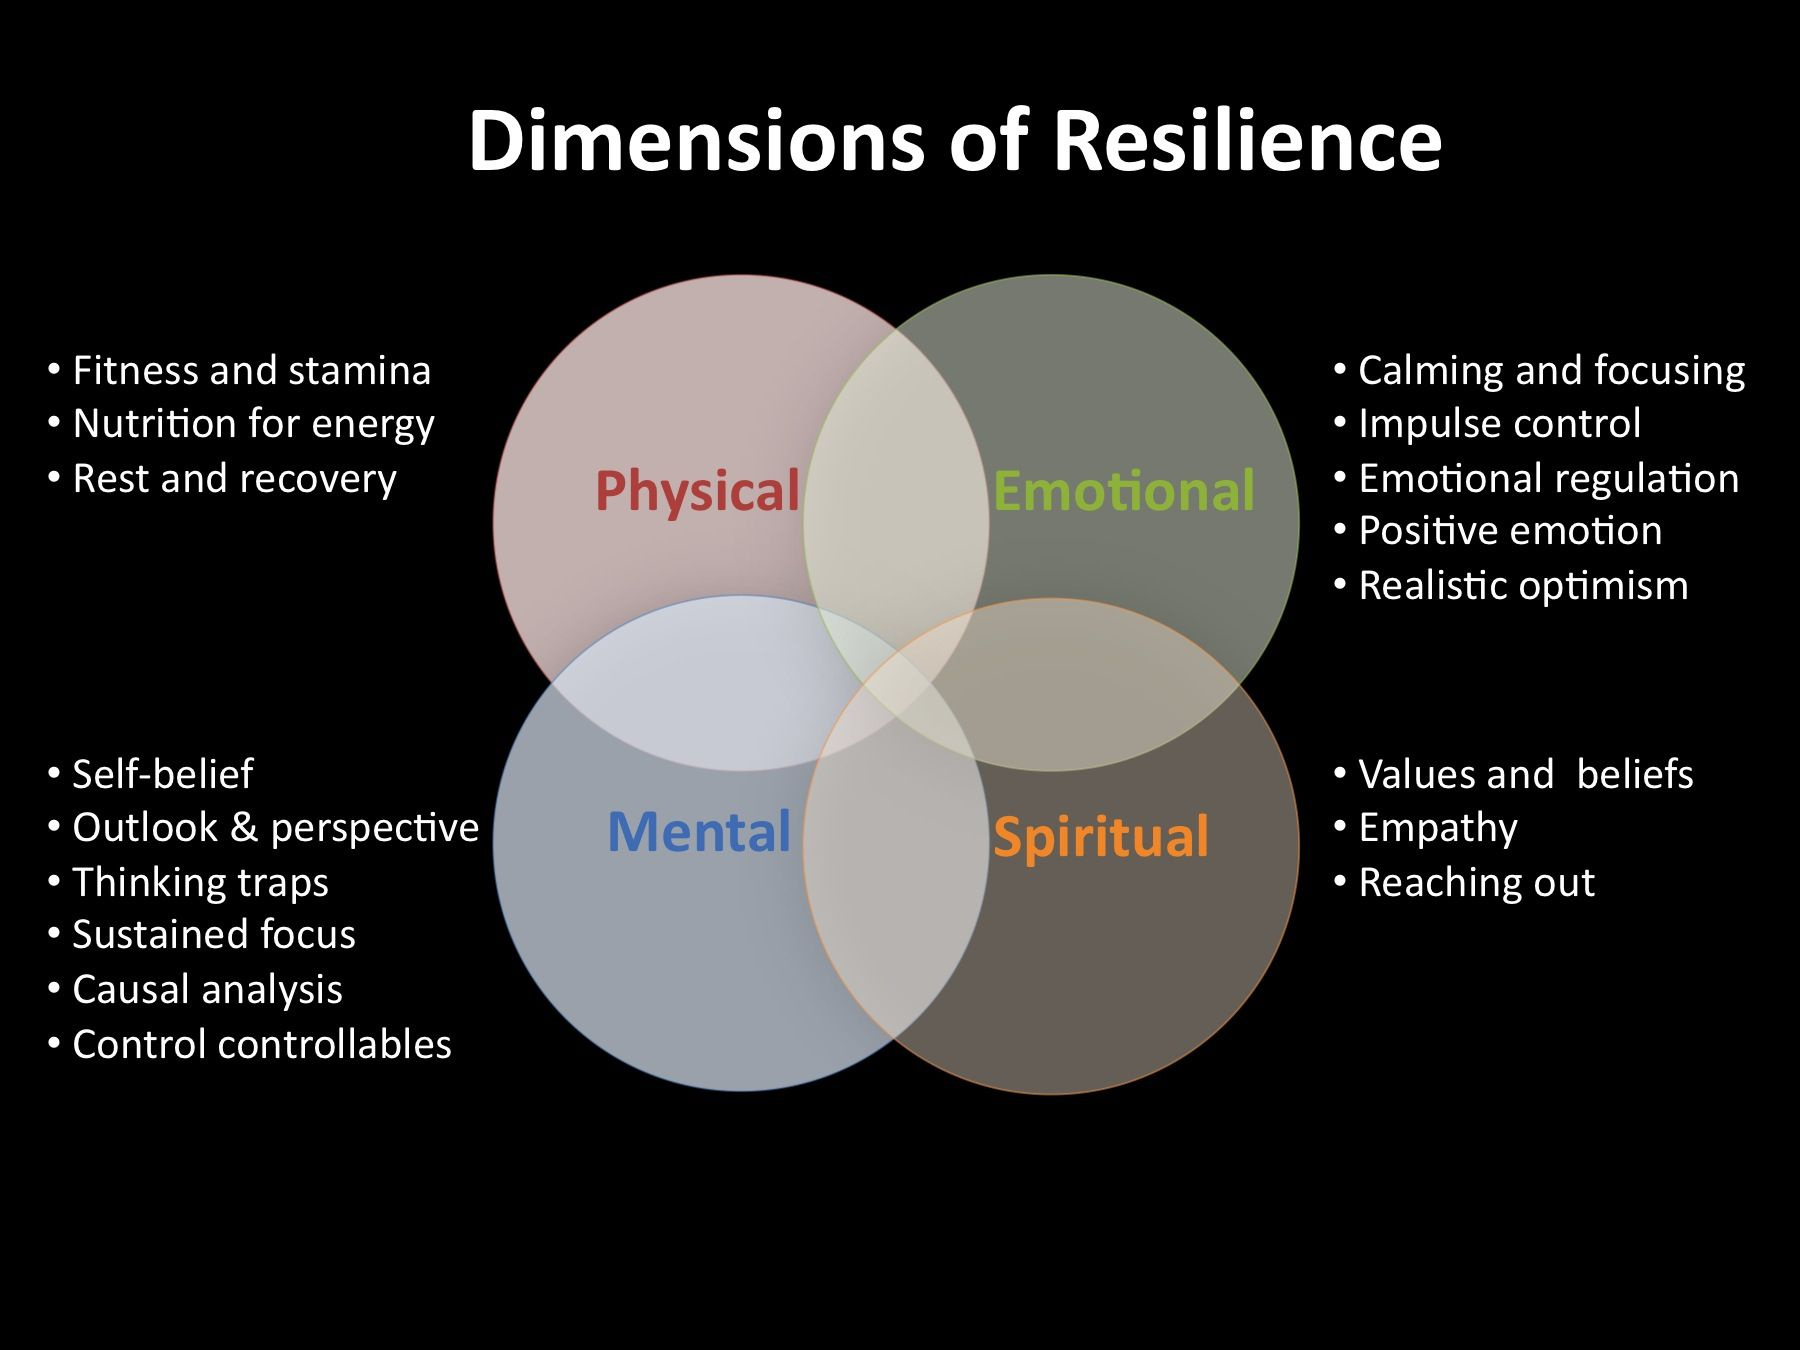 Dimensions Of Resilience With Images